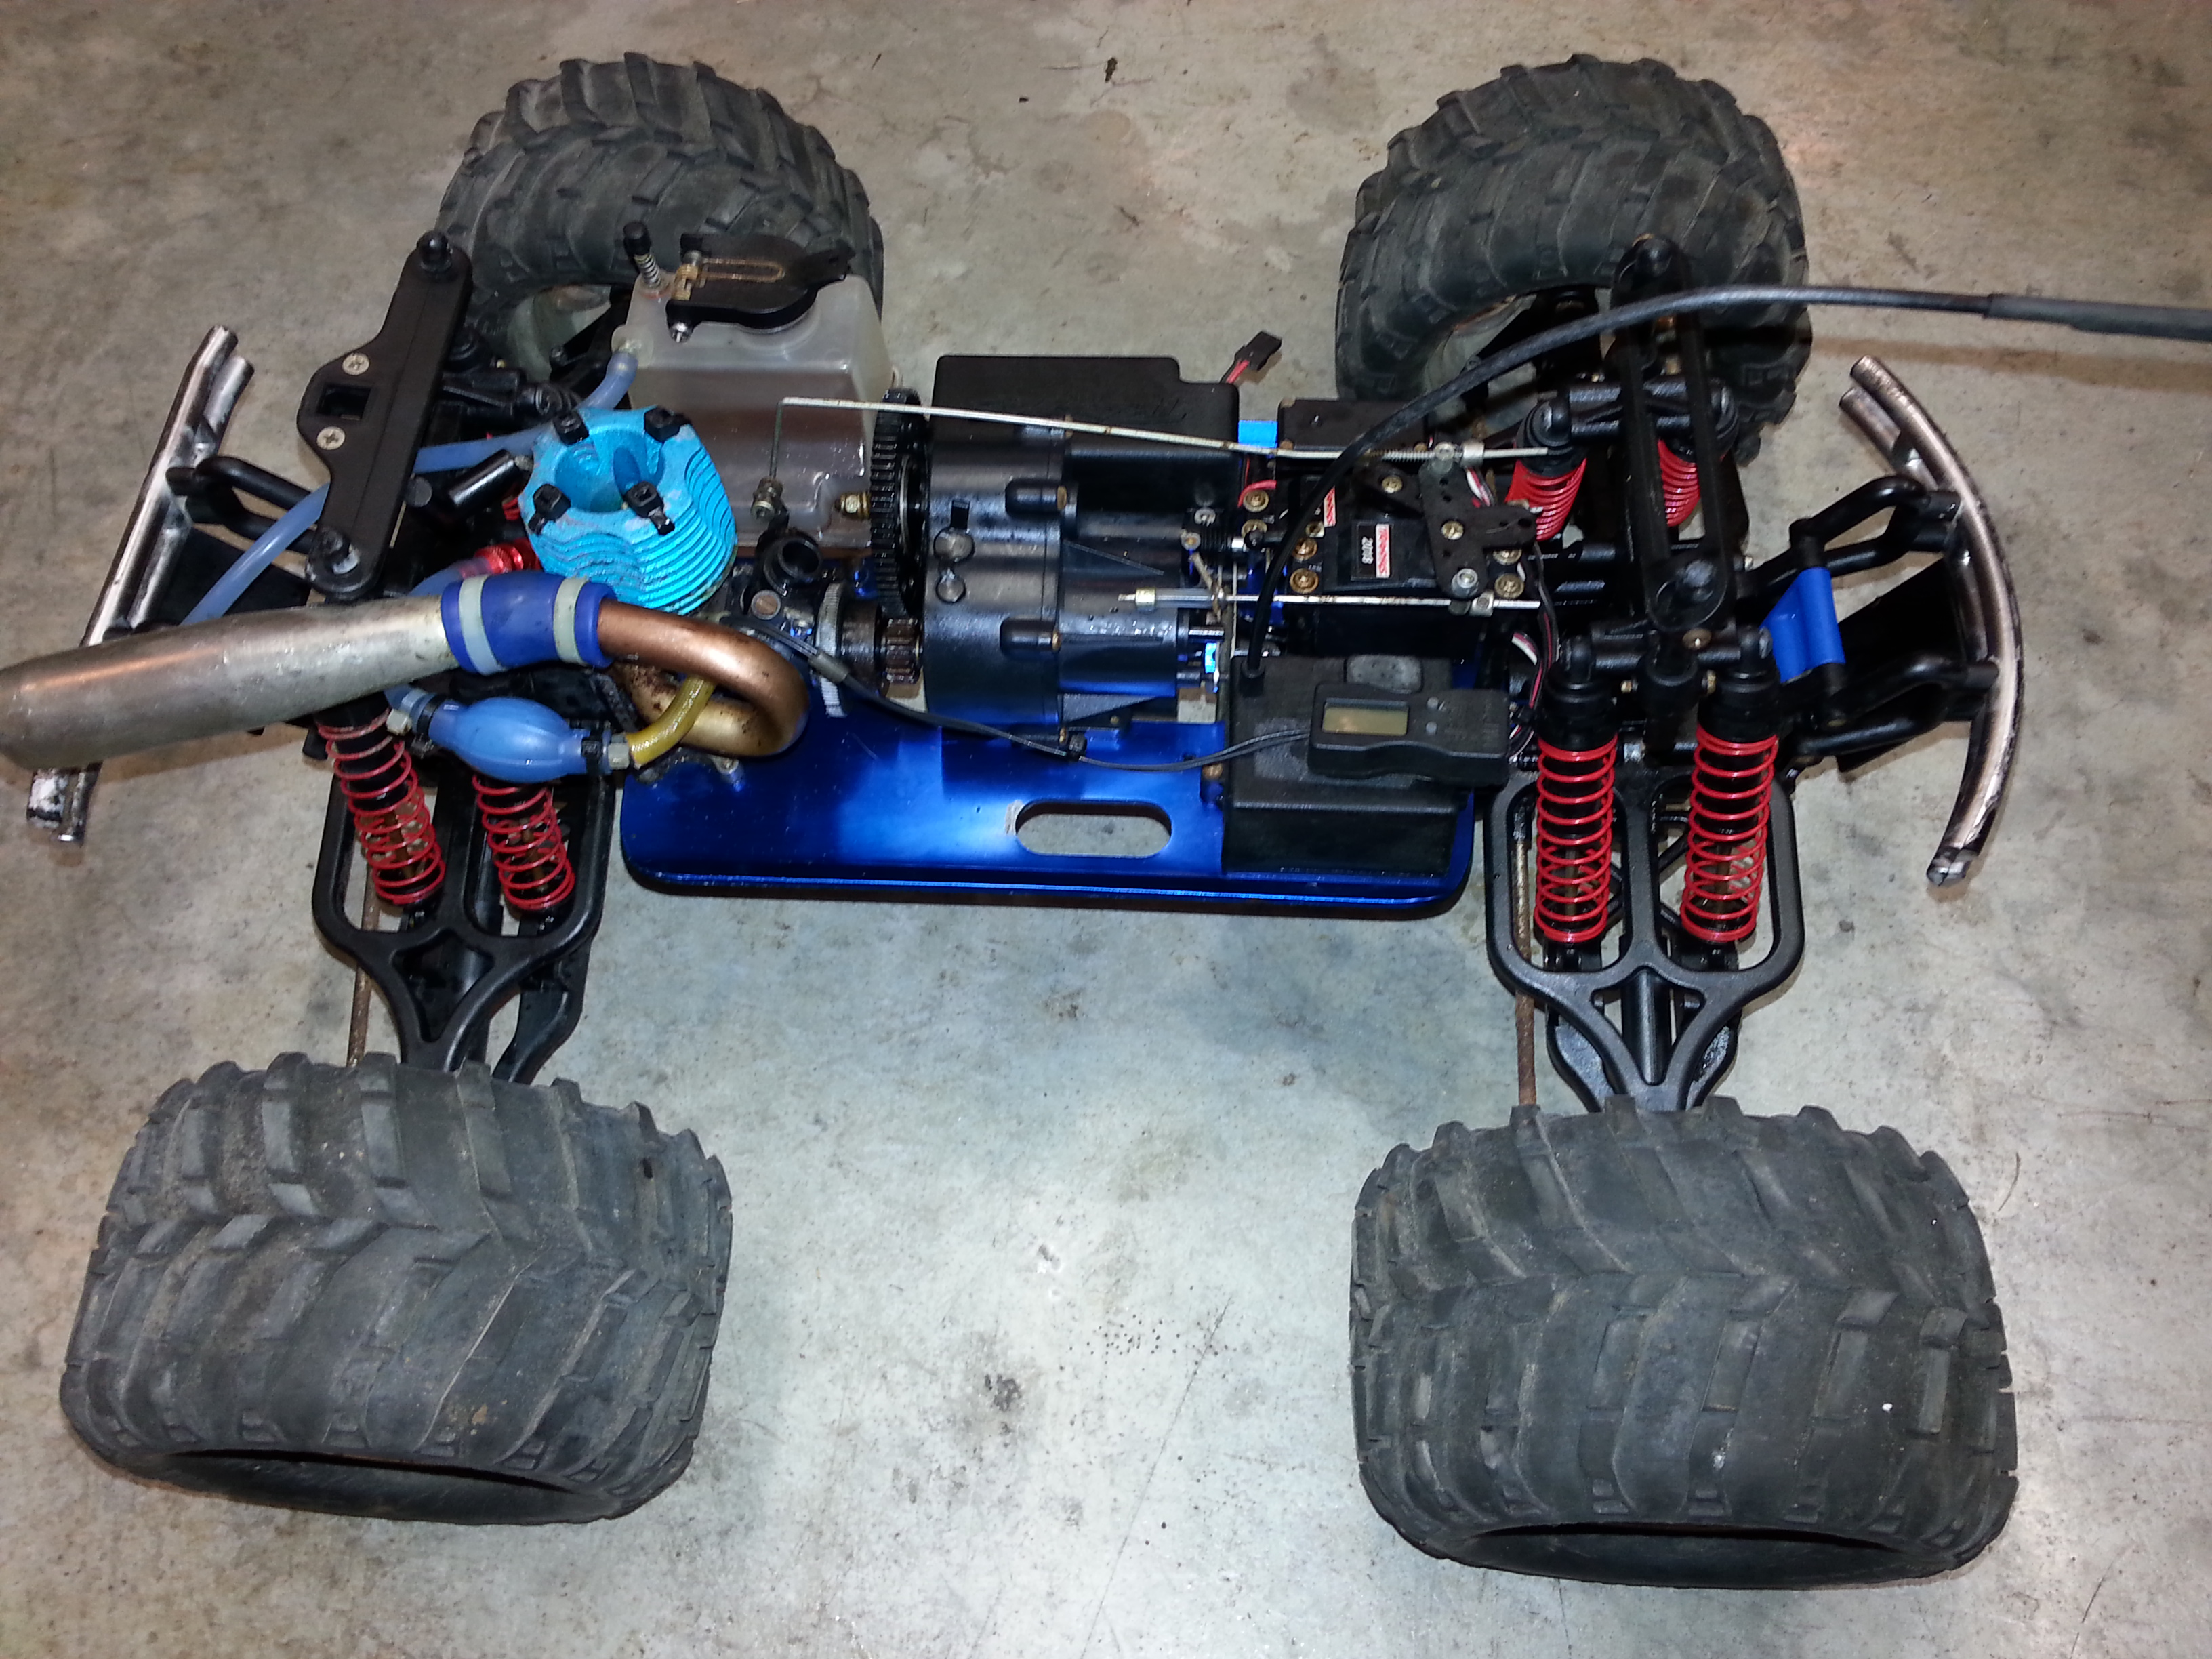 I was given a T-Maxx truck please help! - RCU Forums